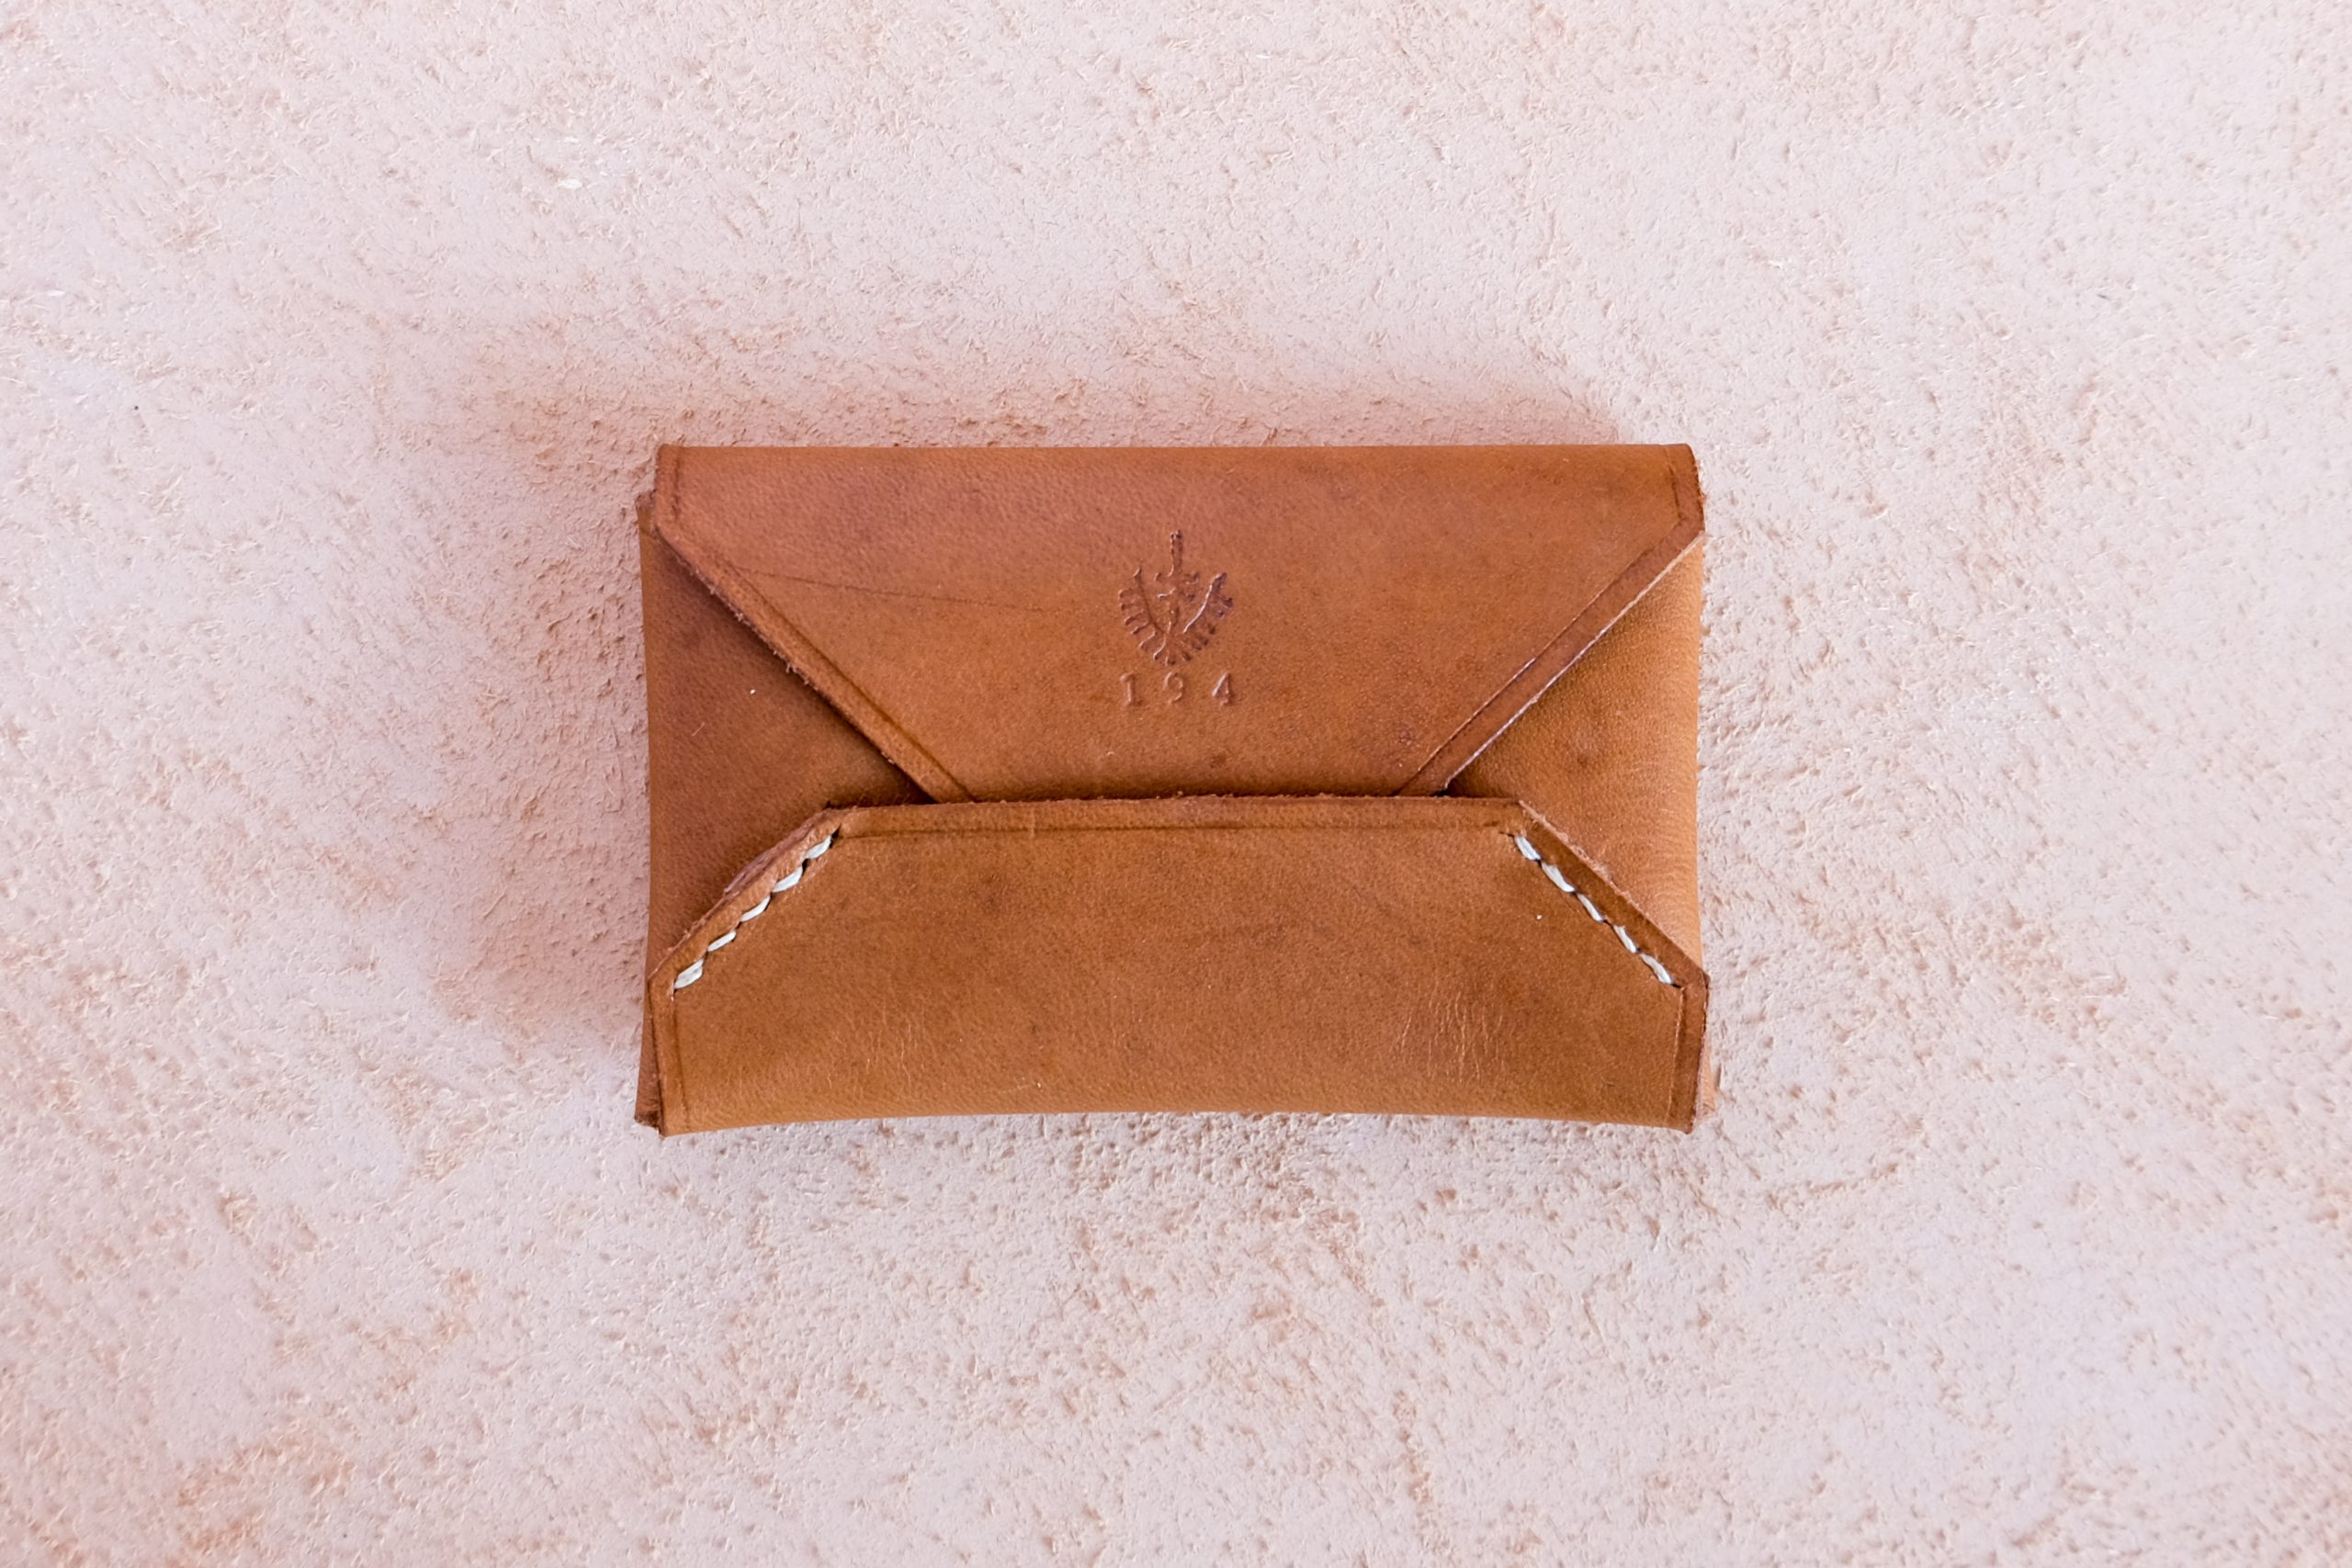 lerif designs leather business card holder airmail in walnut on beige background